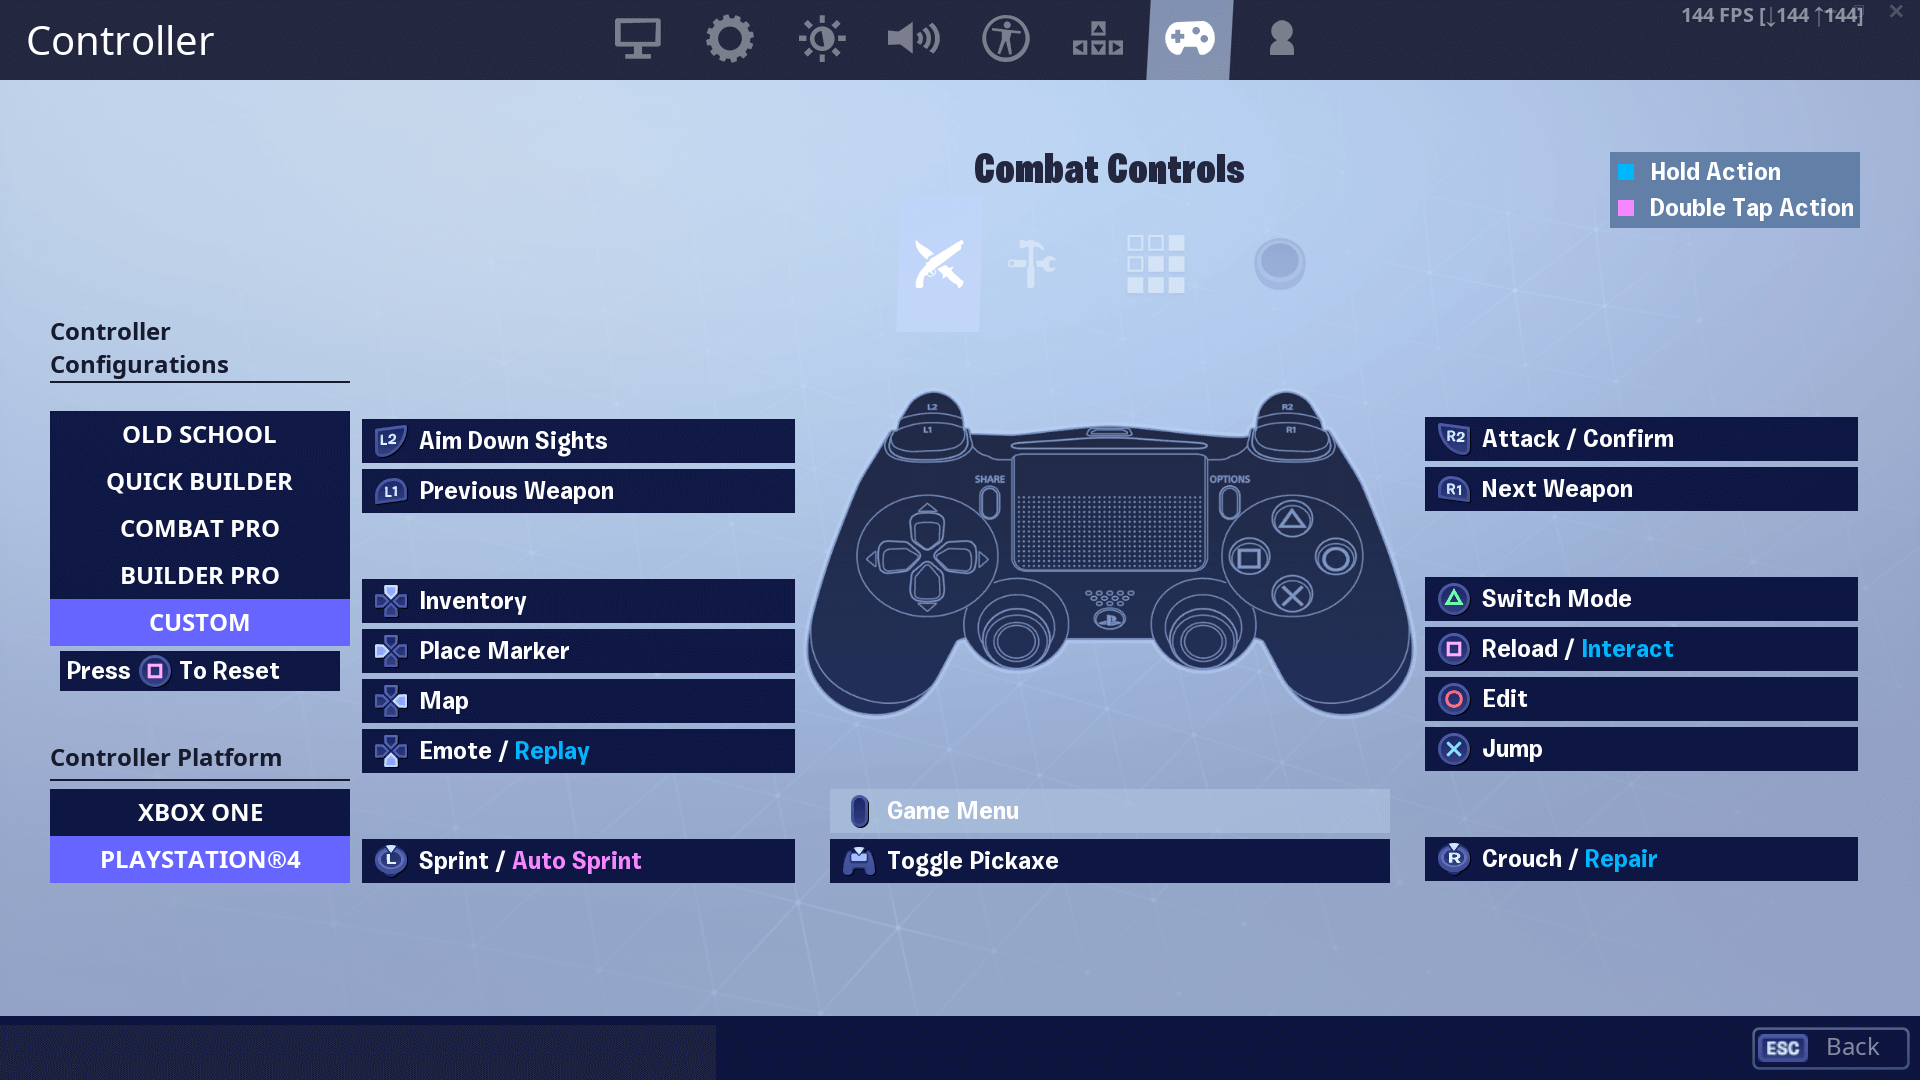 Assault Fortnite Settings, Controller Binds & Setup